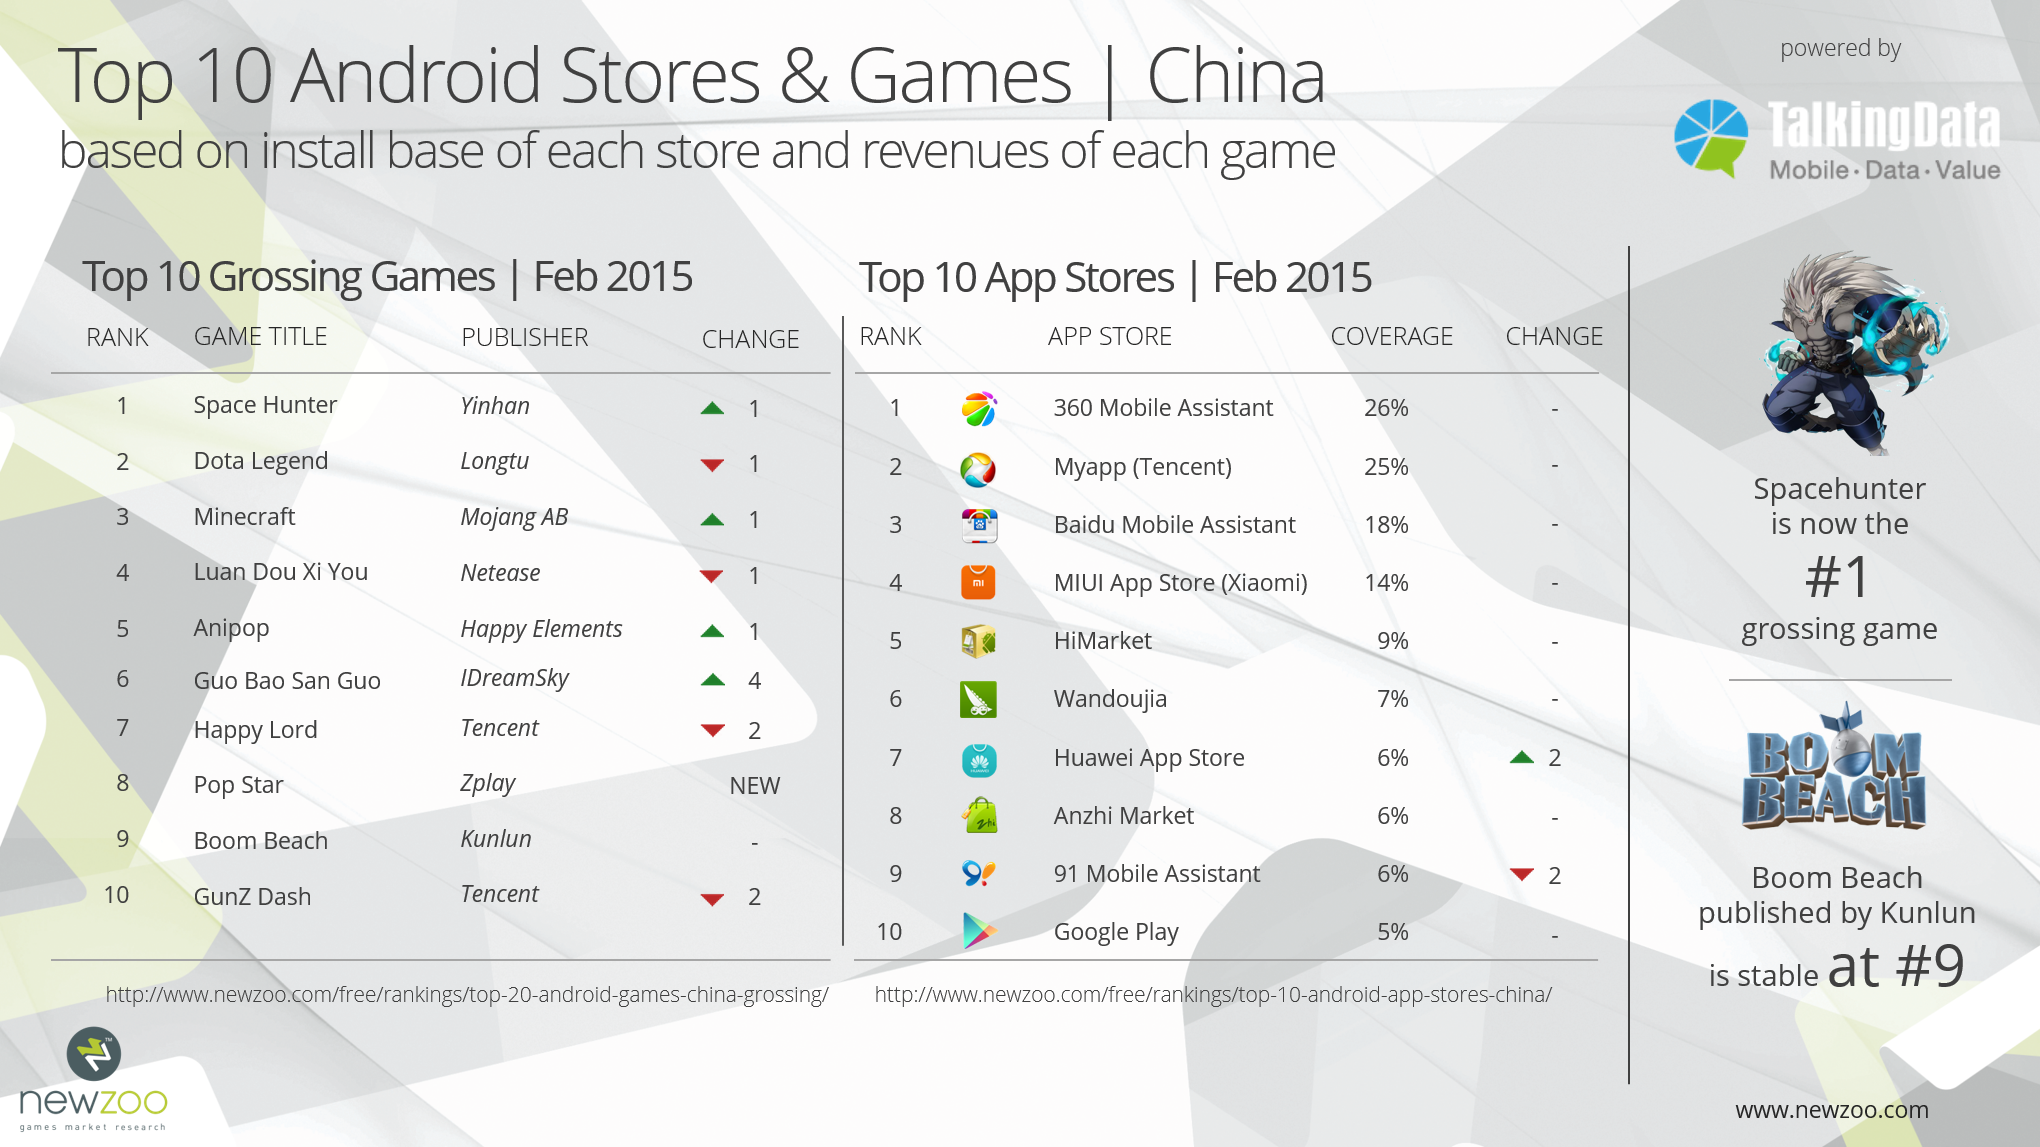 Newzoo_TalkingData_Grossing_Android_Games_Ranking_February_2015_v1